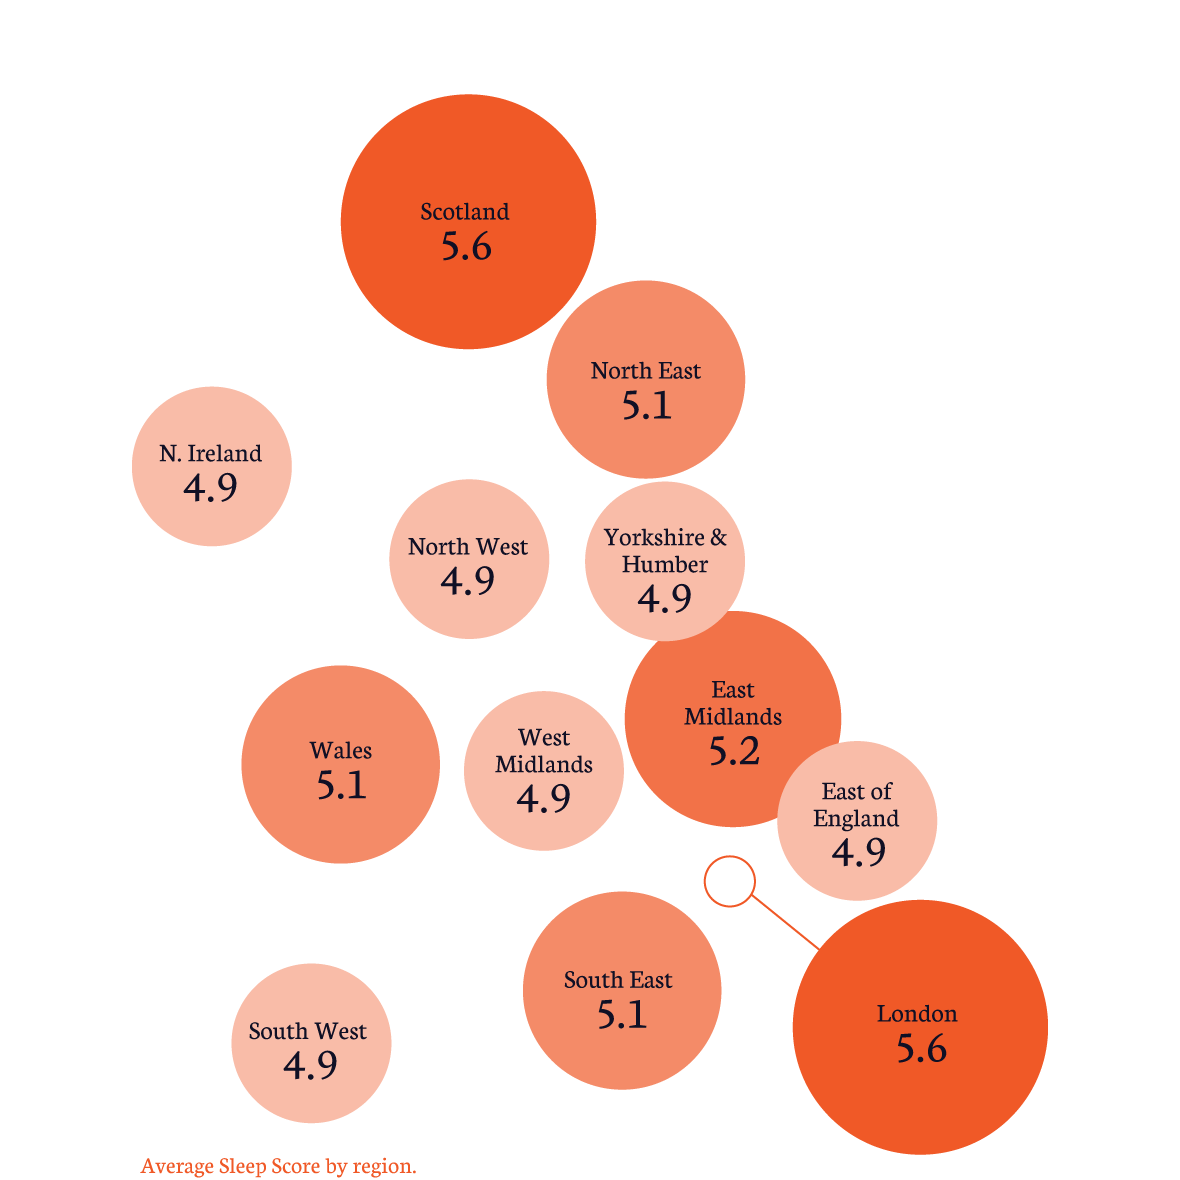 Map of Great Britain, with the average Sleep Score from each region overlaid: Scotland - 5.6; N. Ireland - 4.9; North East - 5.1; North West - 4.9; Yorkshire & Humber - 4.9; Wales - 5.1; West Midlands - 4.9; East Midlands - 5.2; East of England - 4.9; South West - 4.9; South East - 5.1; London - 5.6;